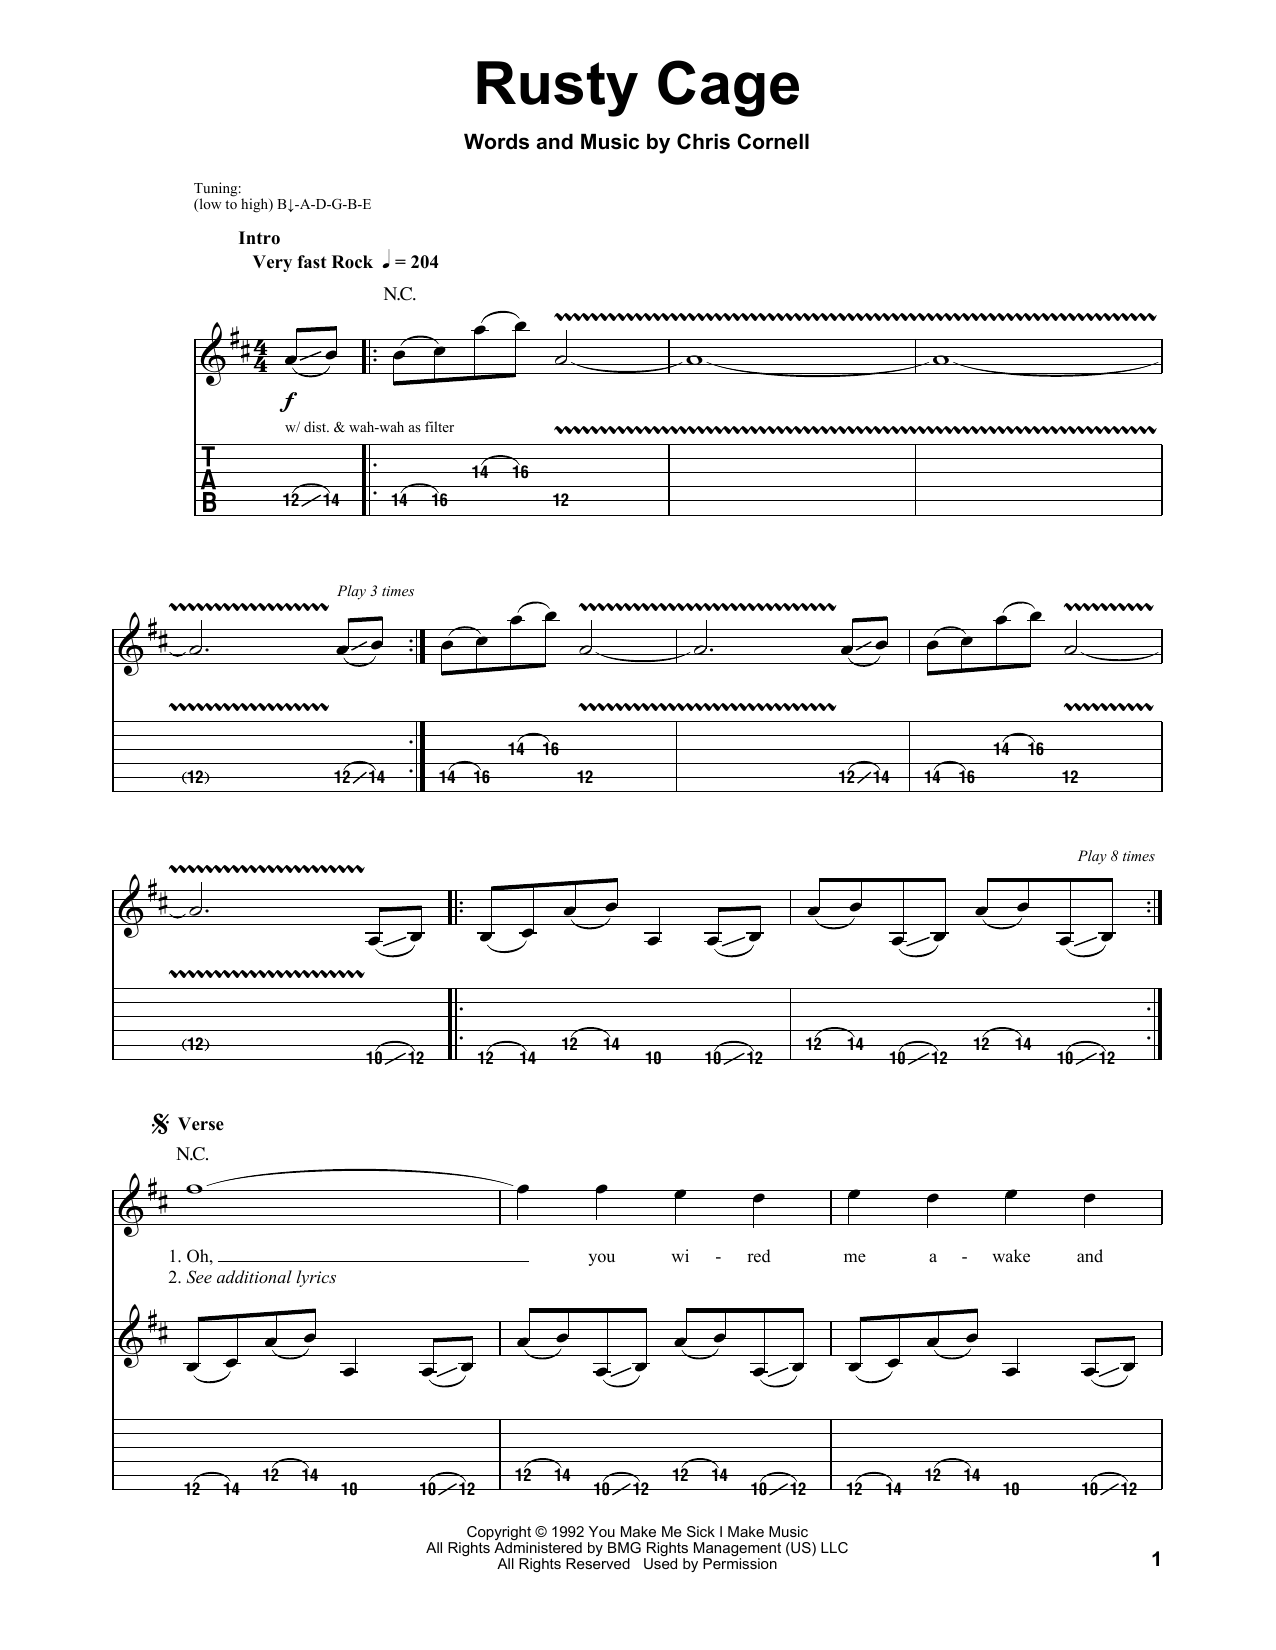 Soundgarden Rusty Cage sheet music notes and chords. Download Printable PDF.